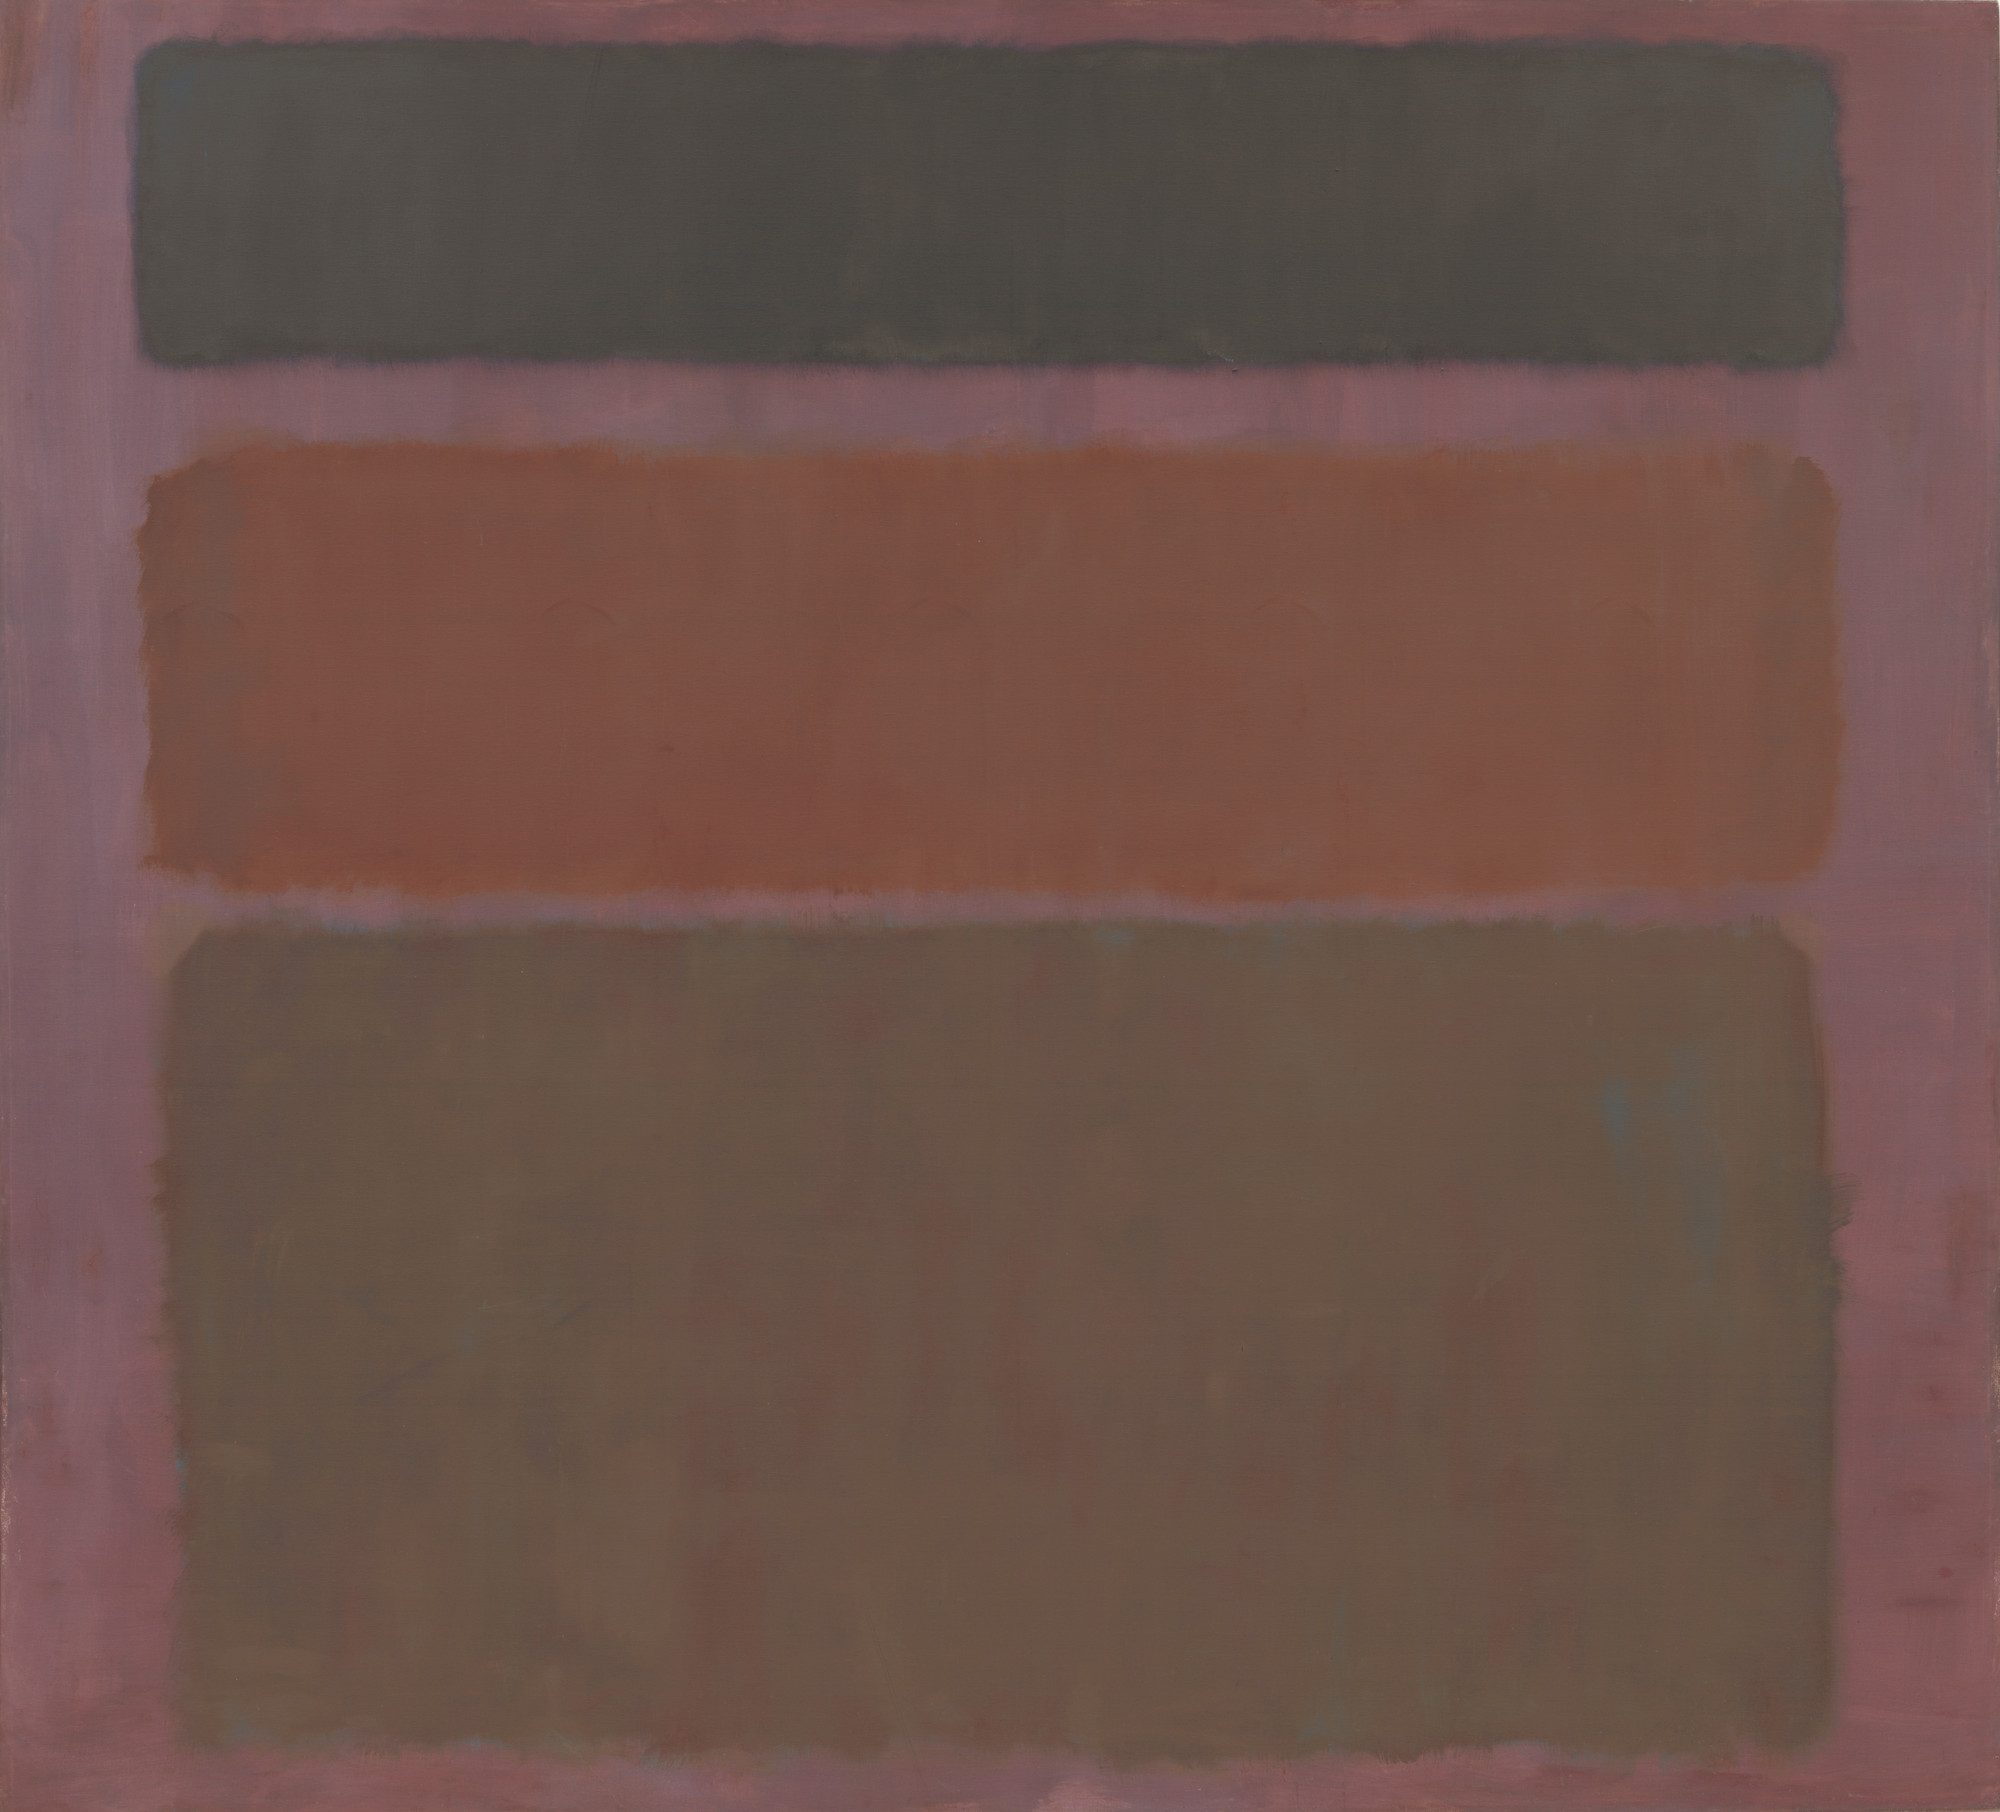 Mark Rothko. No. 16 (Red, Brown, and Black). 1958